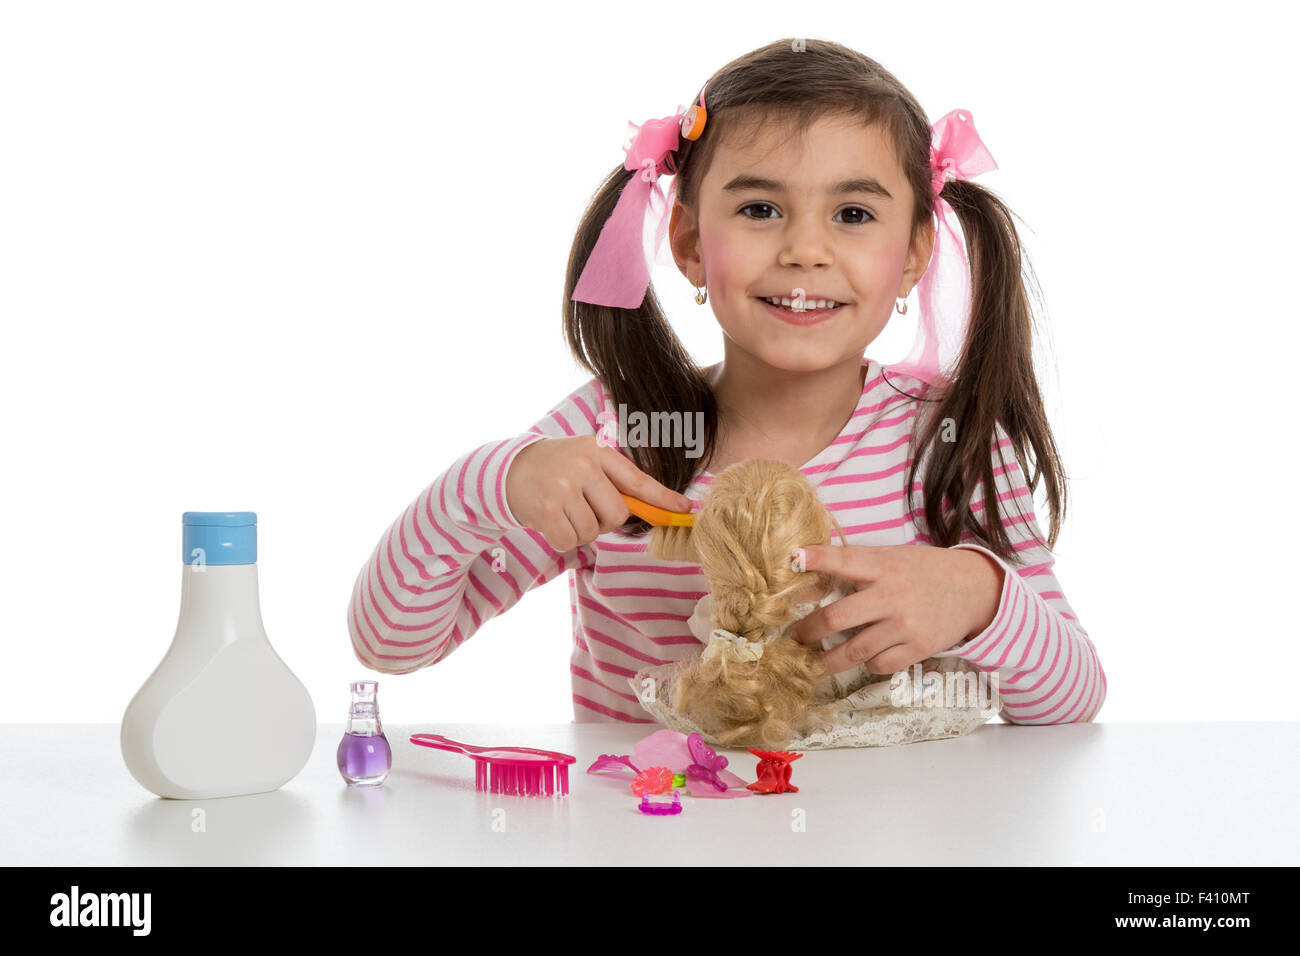 girl playing with doll - Stock Image